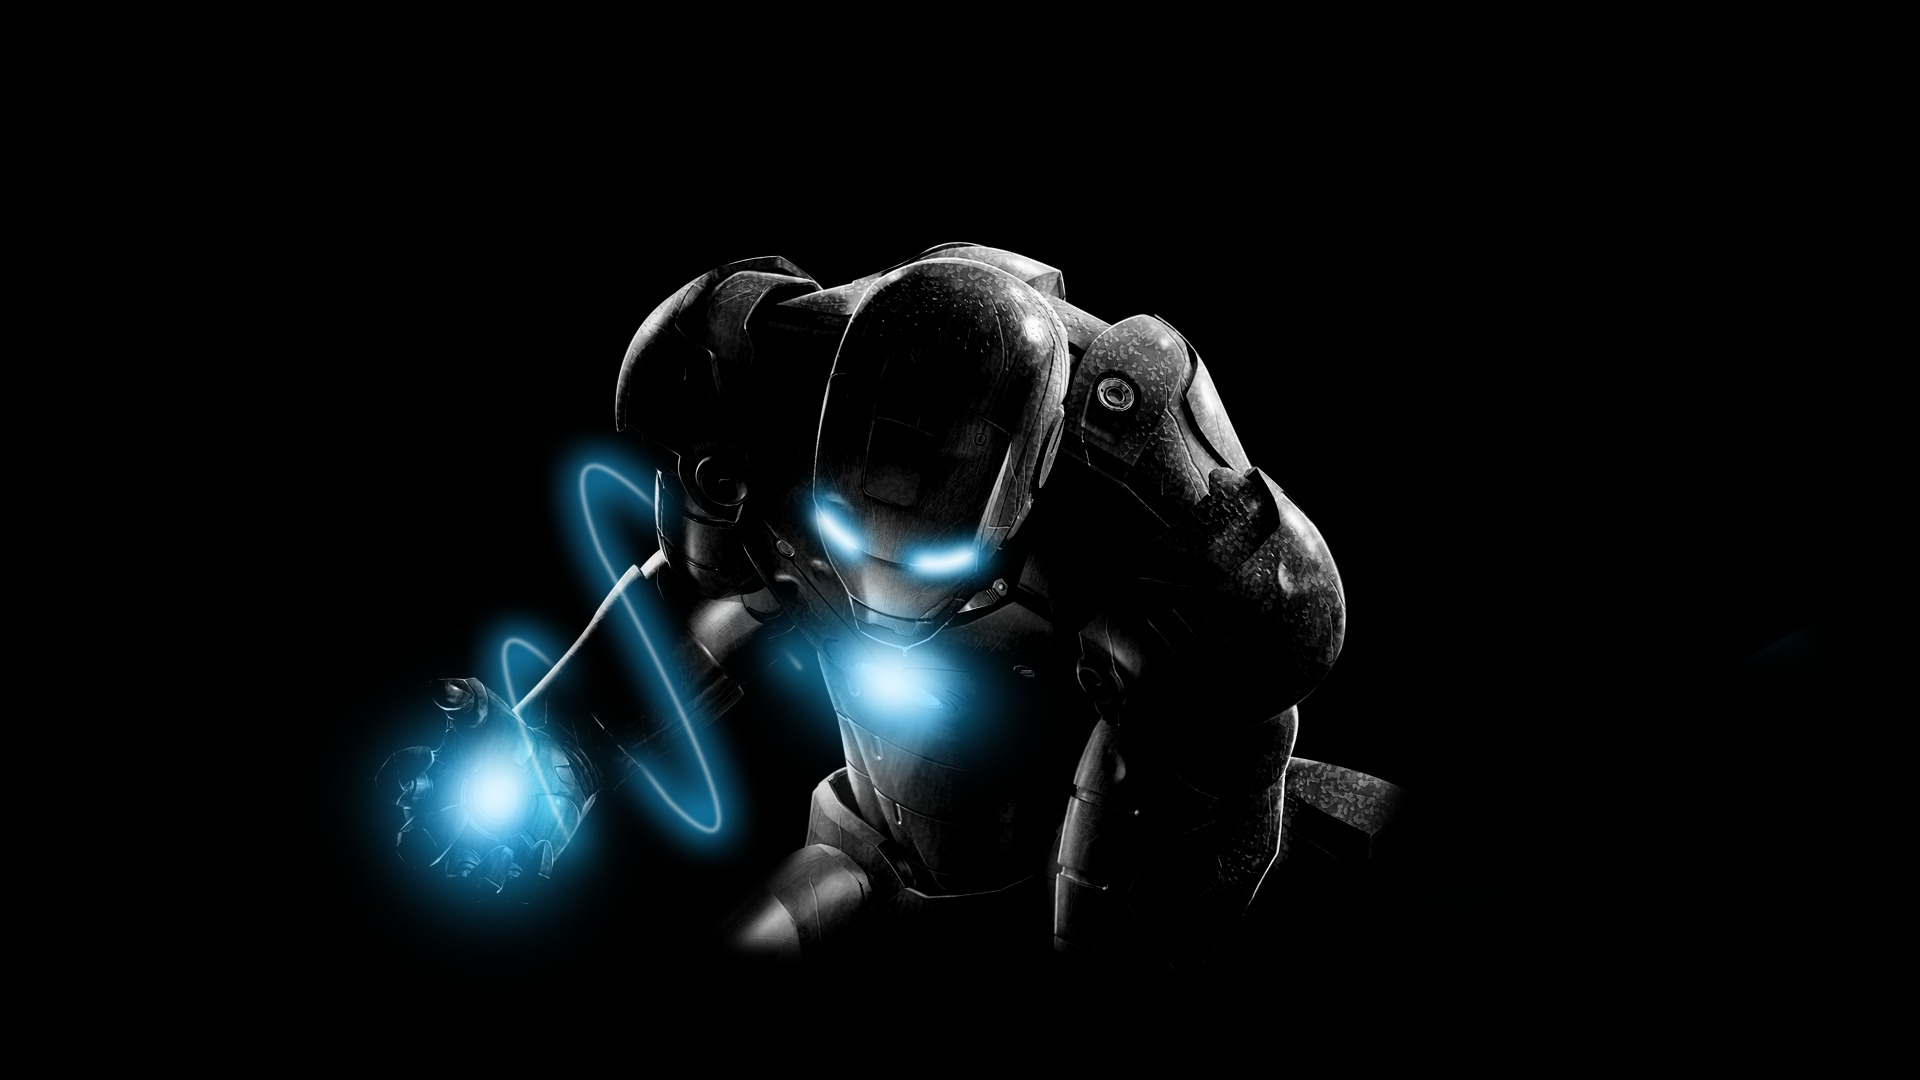 Fond dcran 4K   marvel comics   iron man marvel comics   1920x1080 1920x1080